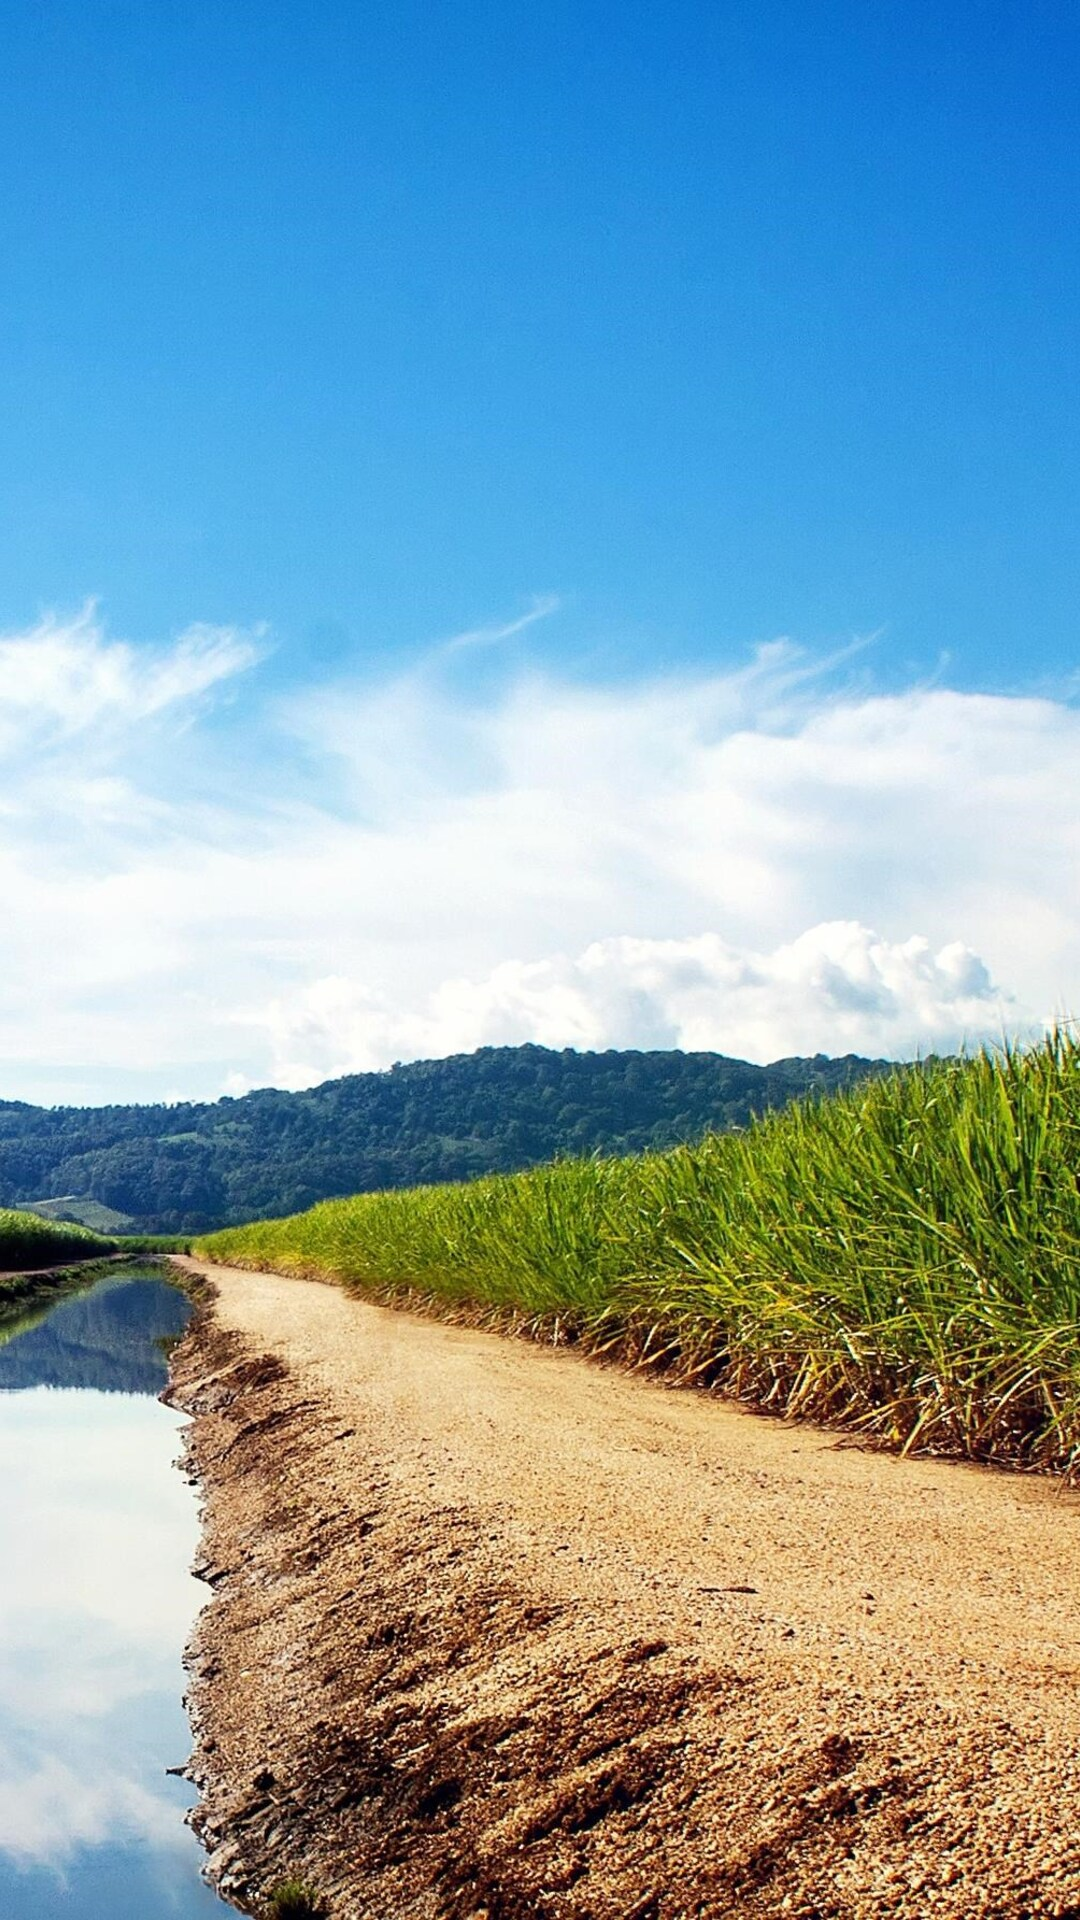 sugarcane-fields.jpg